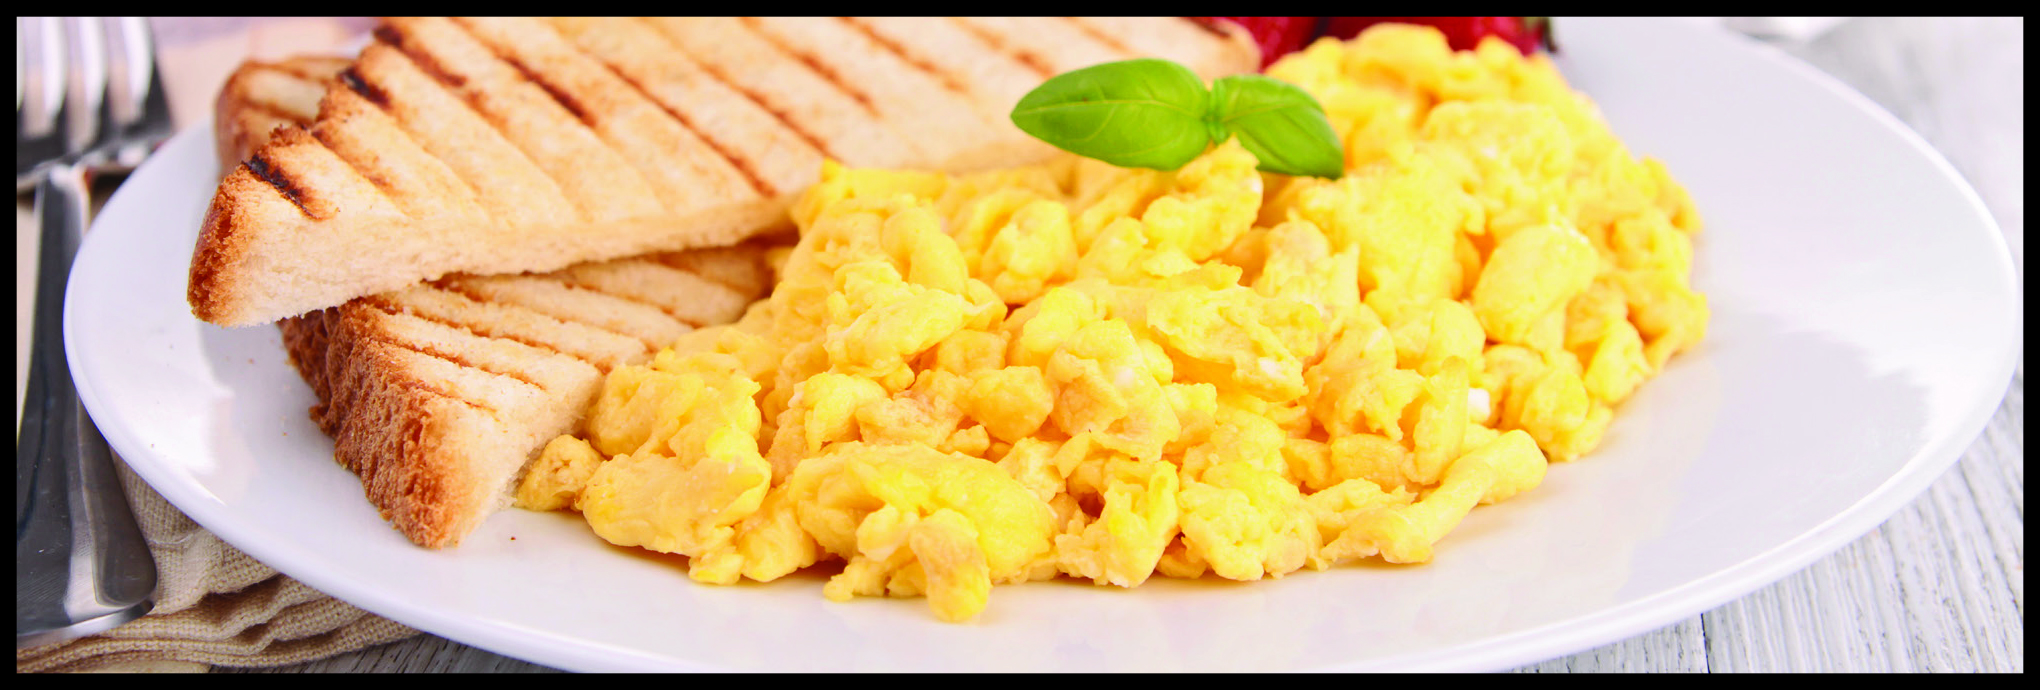 eggs-remain-a-staple-in-breakfast-food-trends